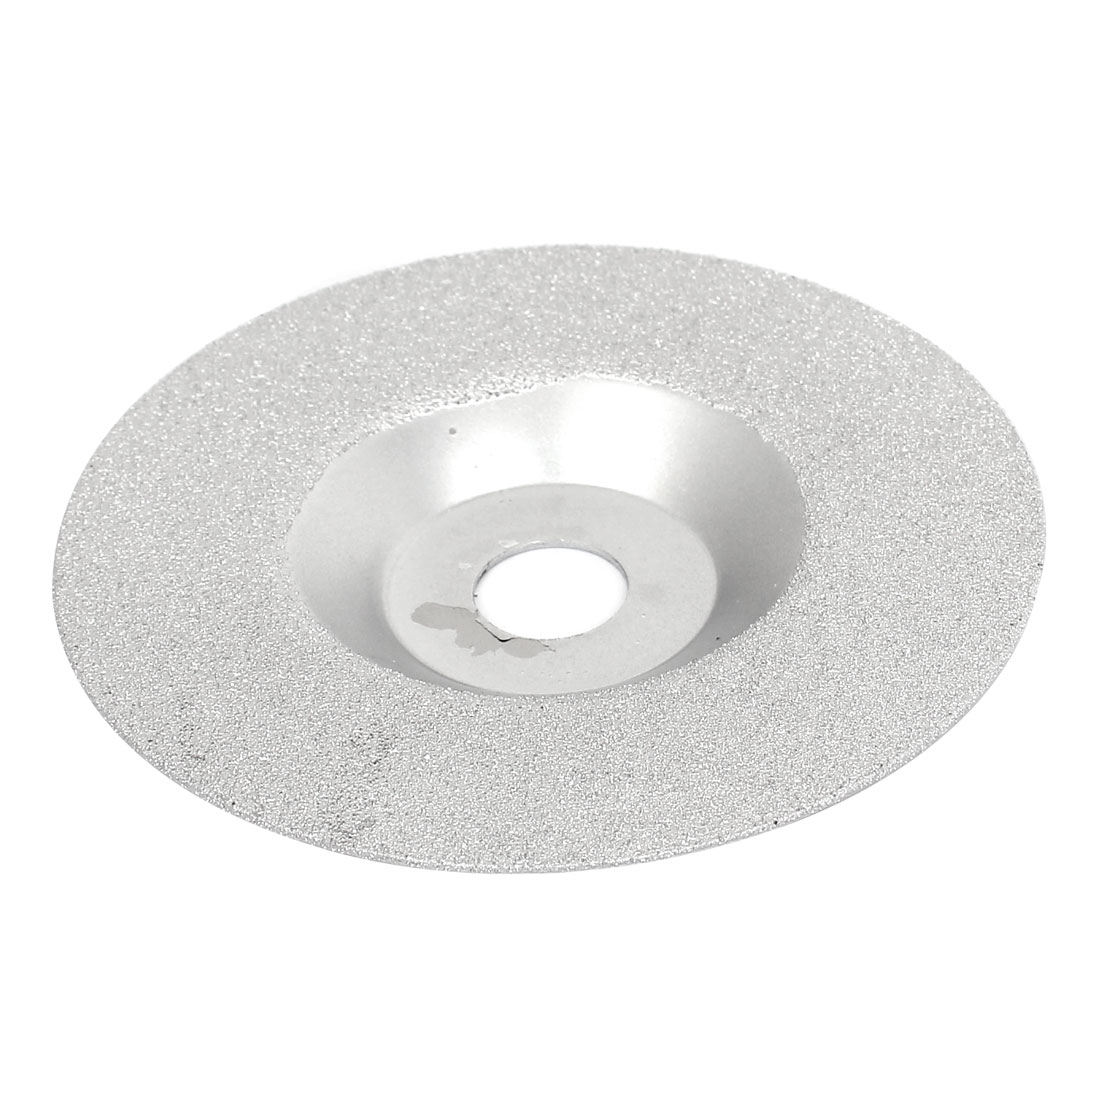 "100mm 4"" Glass Tile Ceramic Diamond Cup Polishing Grinding Wheel Disc"